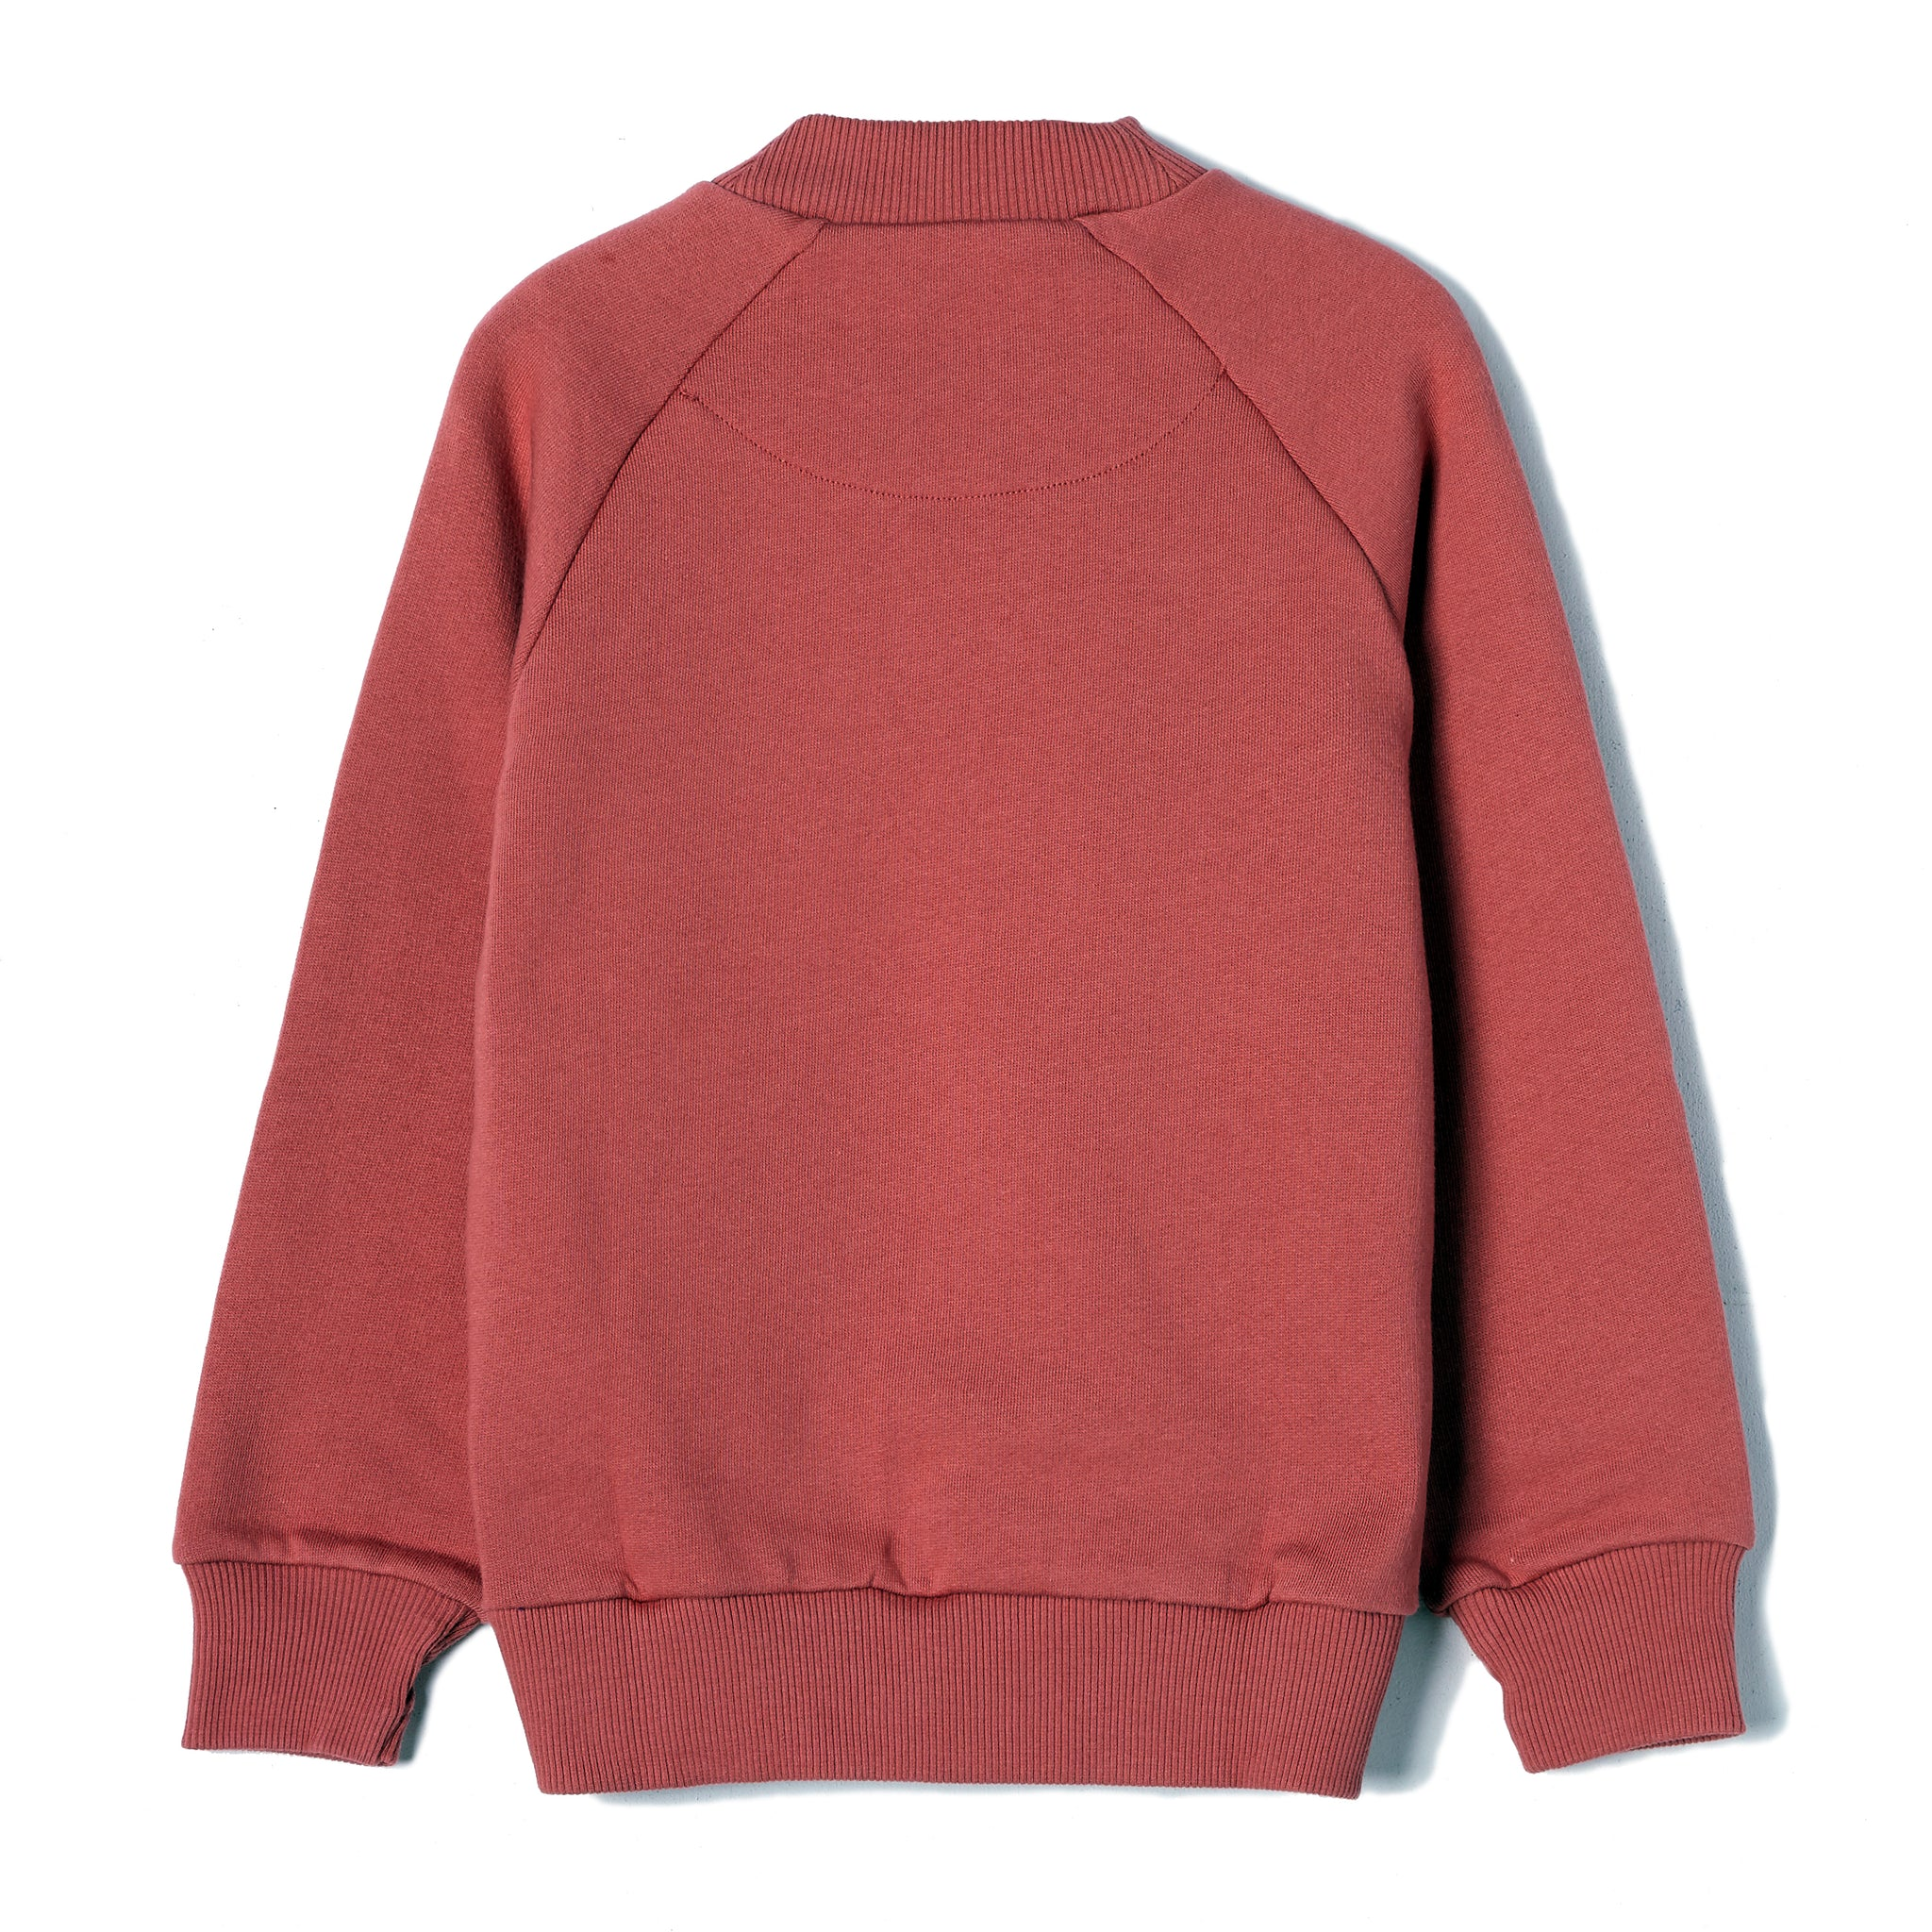 MILLIE Old Pink Pegasus - Raglan Sleeves Sweatshirt